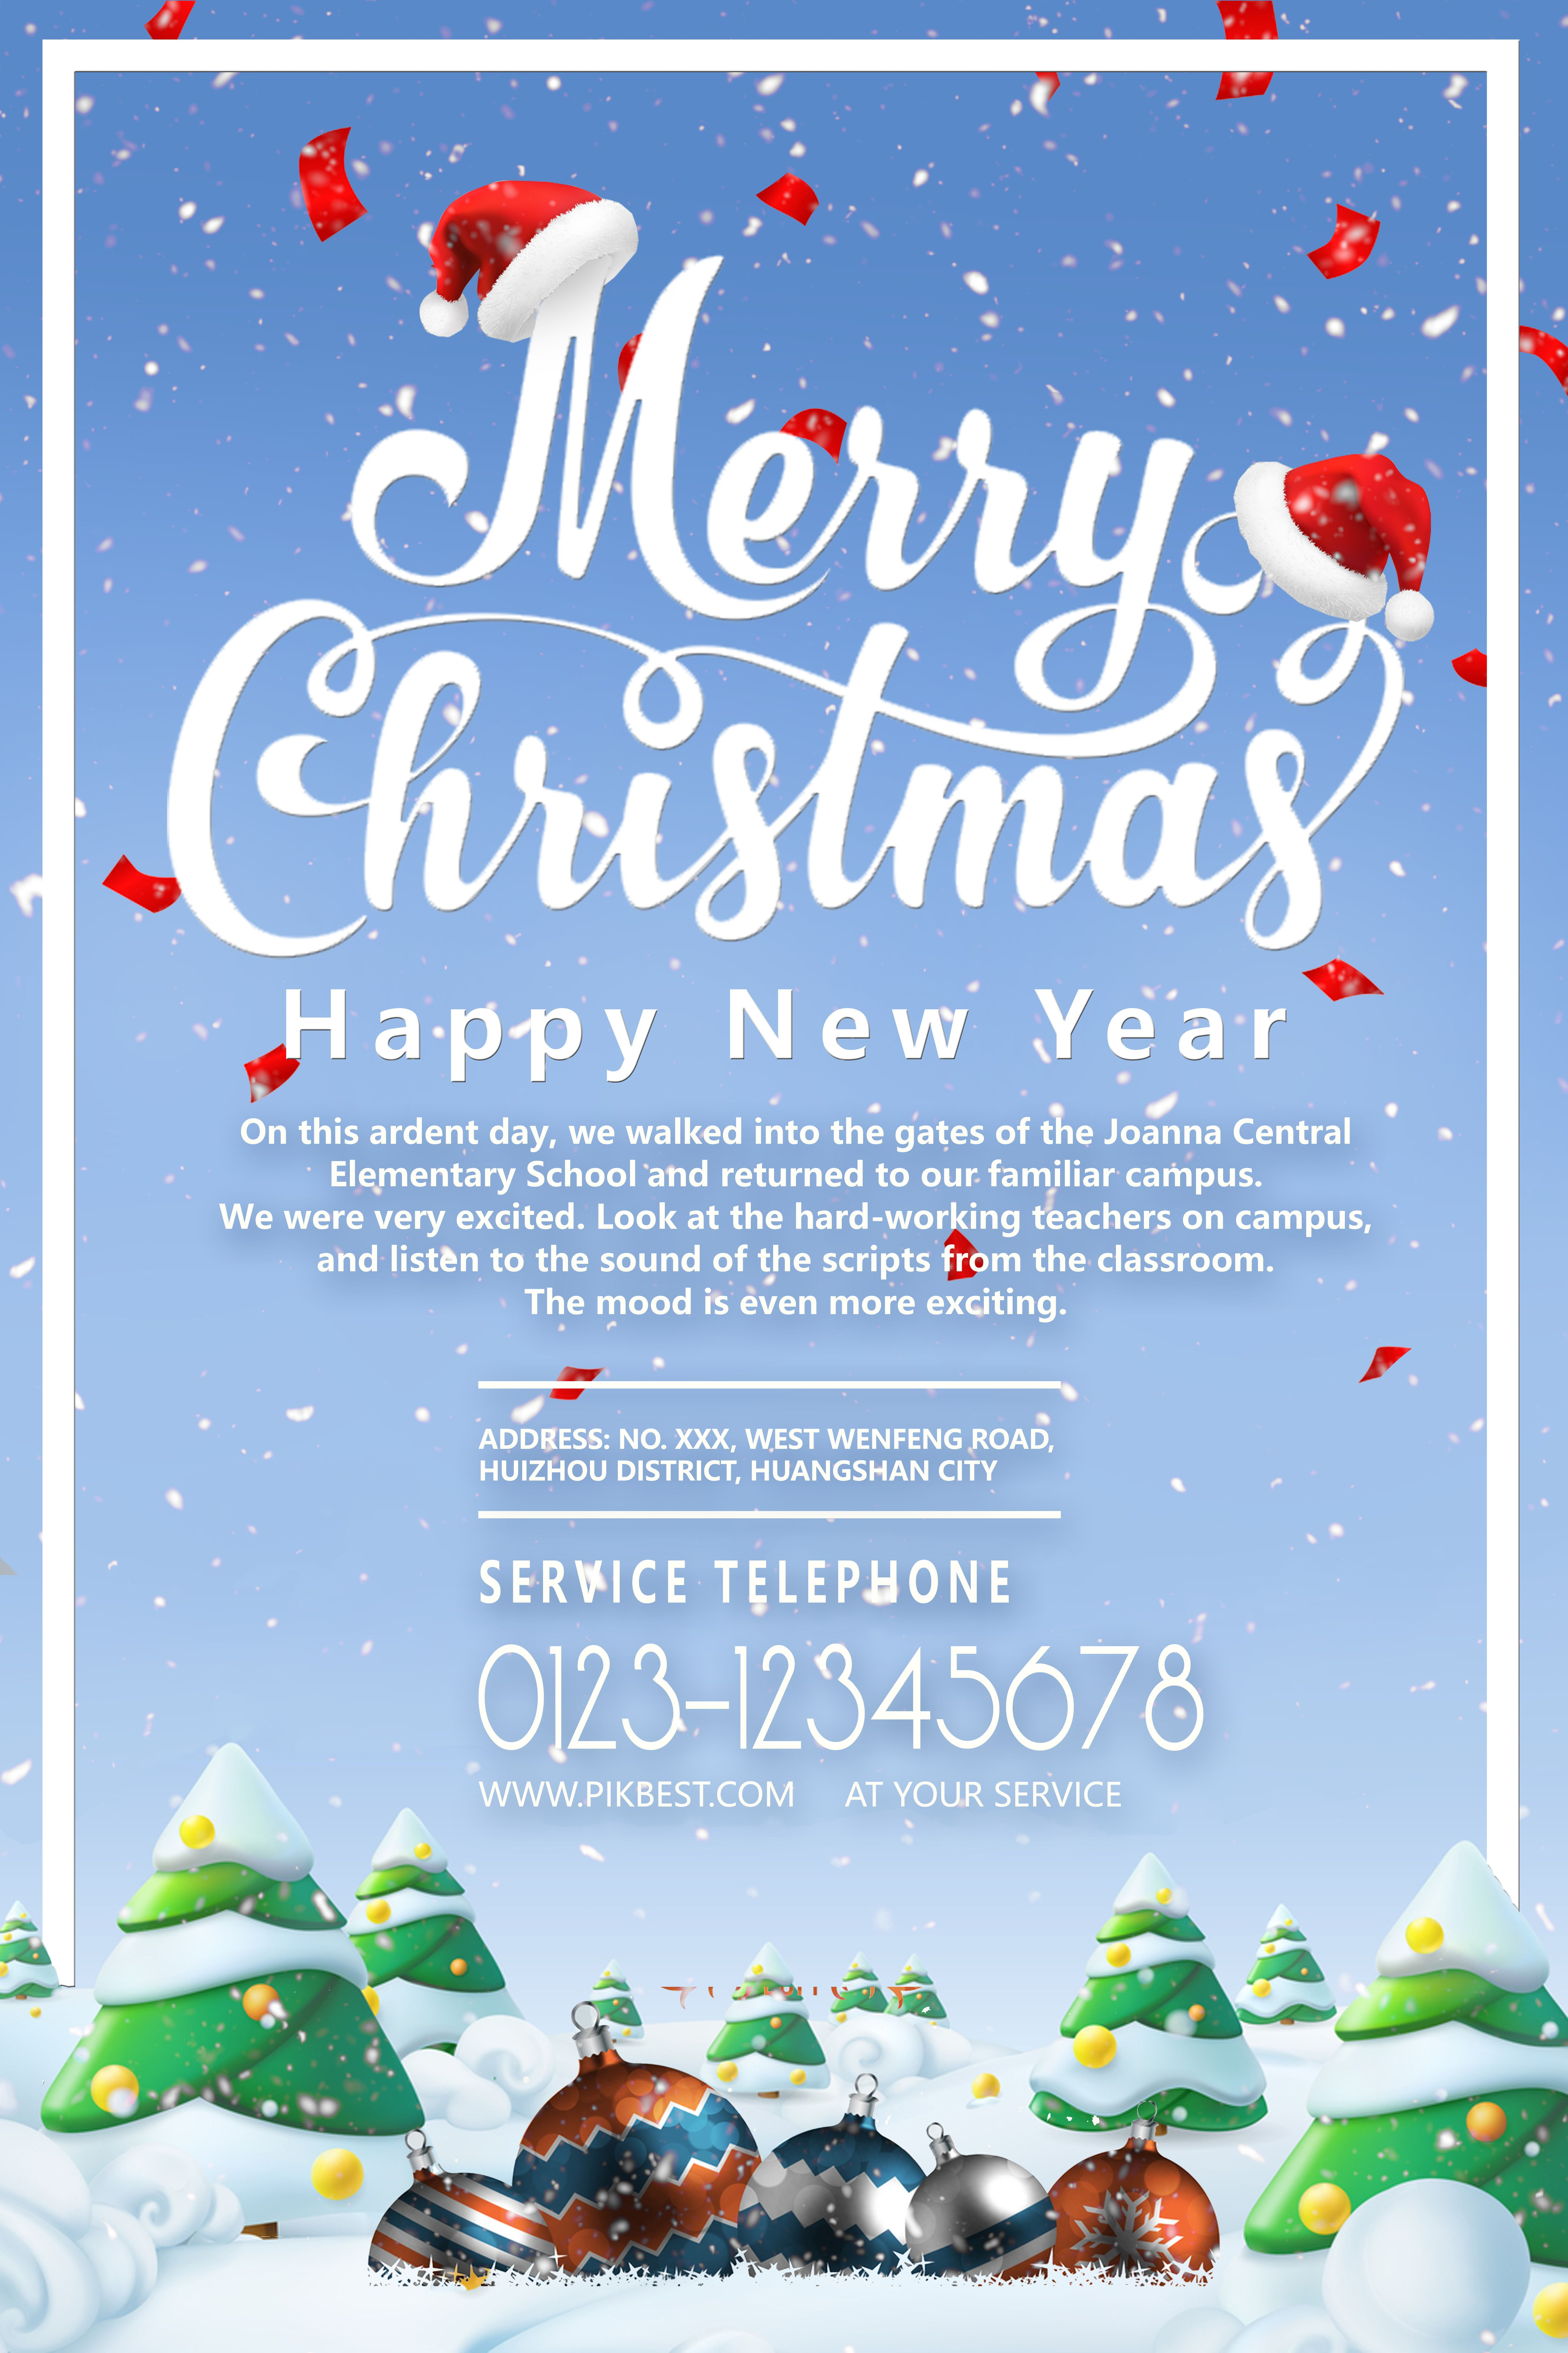 Merry Christmas Happy New Year Poster Design Template Template Psd Psd Free Download Pikbest New Years Poster Poster Design Merry Christmas And Happy New Year